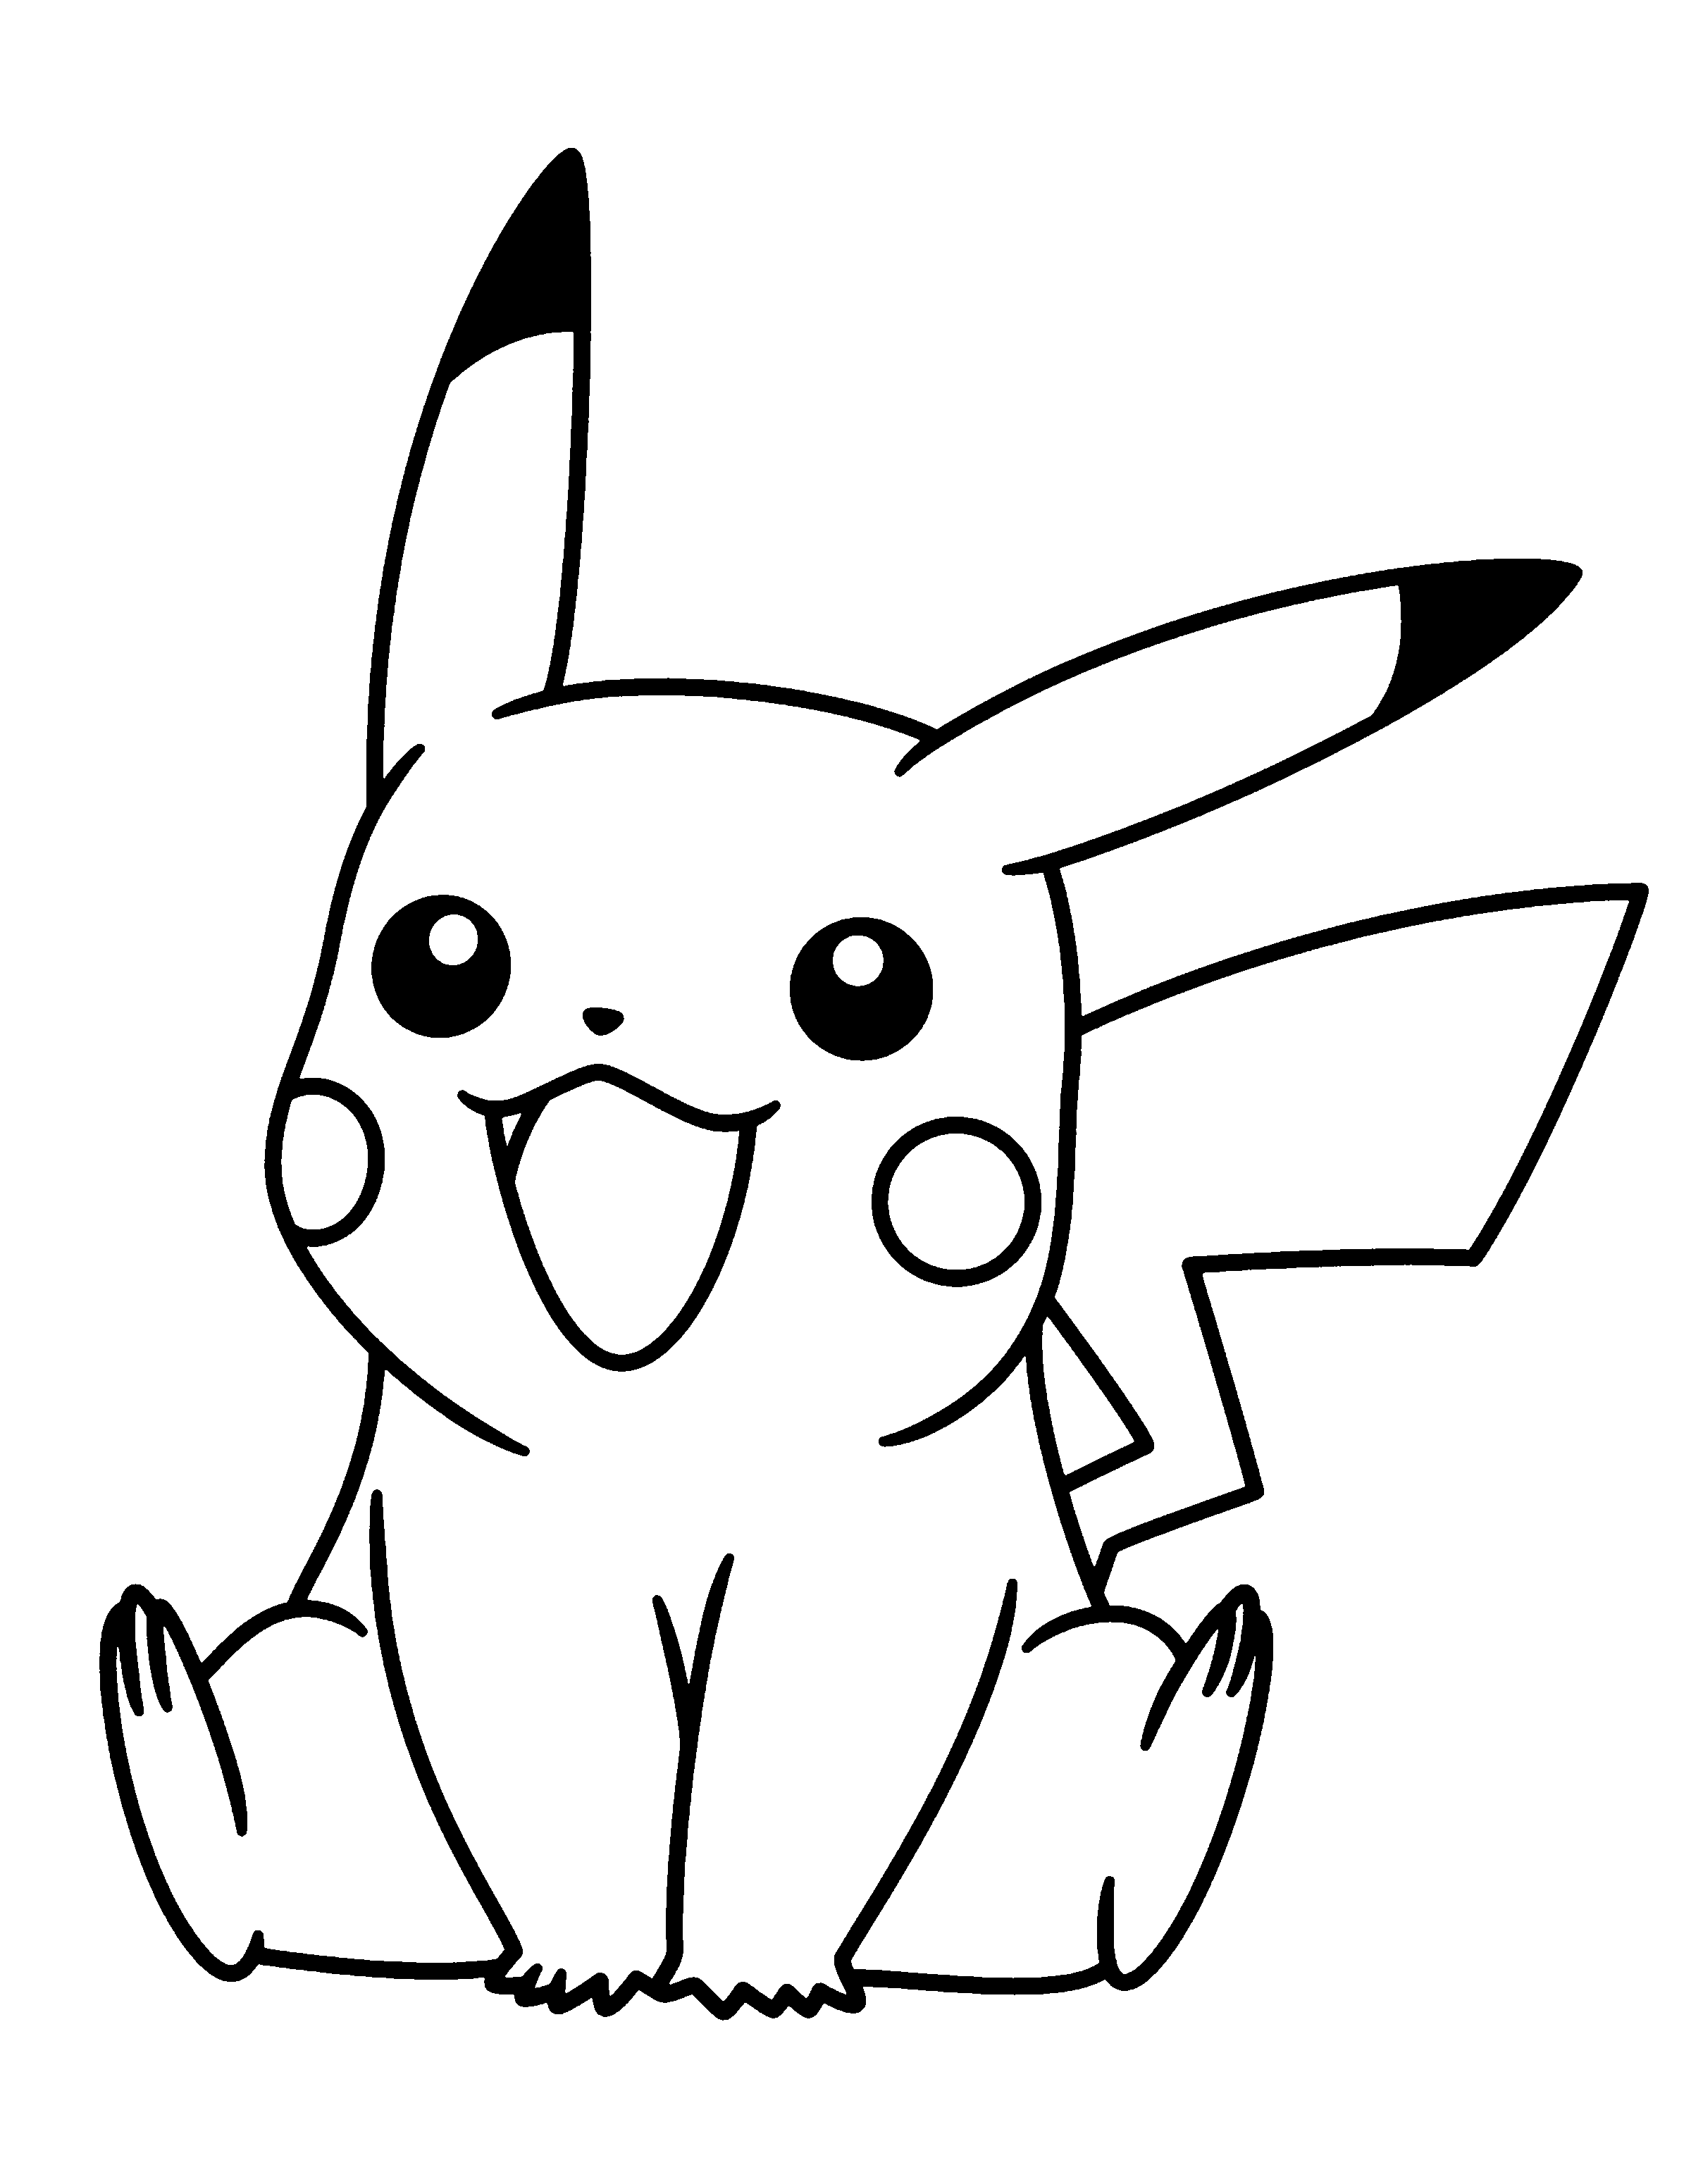 Edge Pokemon Color Sheet Liberal Printable Col 7823 Unknown Resolutions Www Reevolveclothing C Pikachu Coloring Page Kitty Coloring Pokemon Coloring Pages